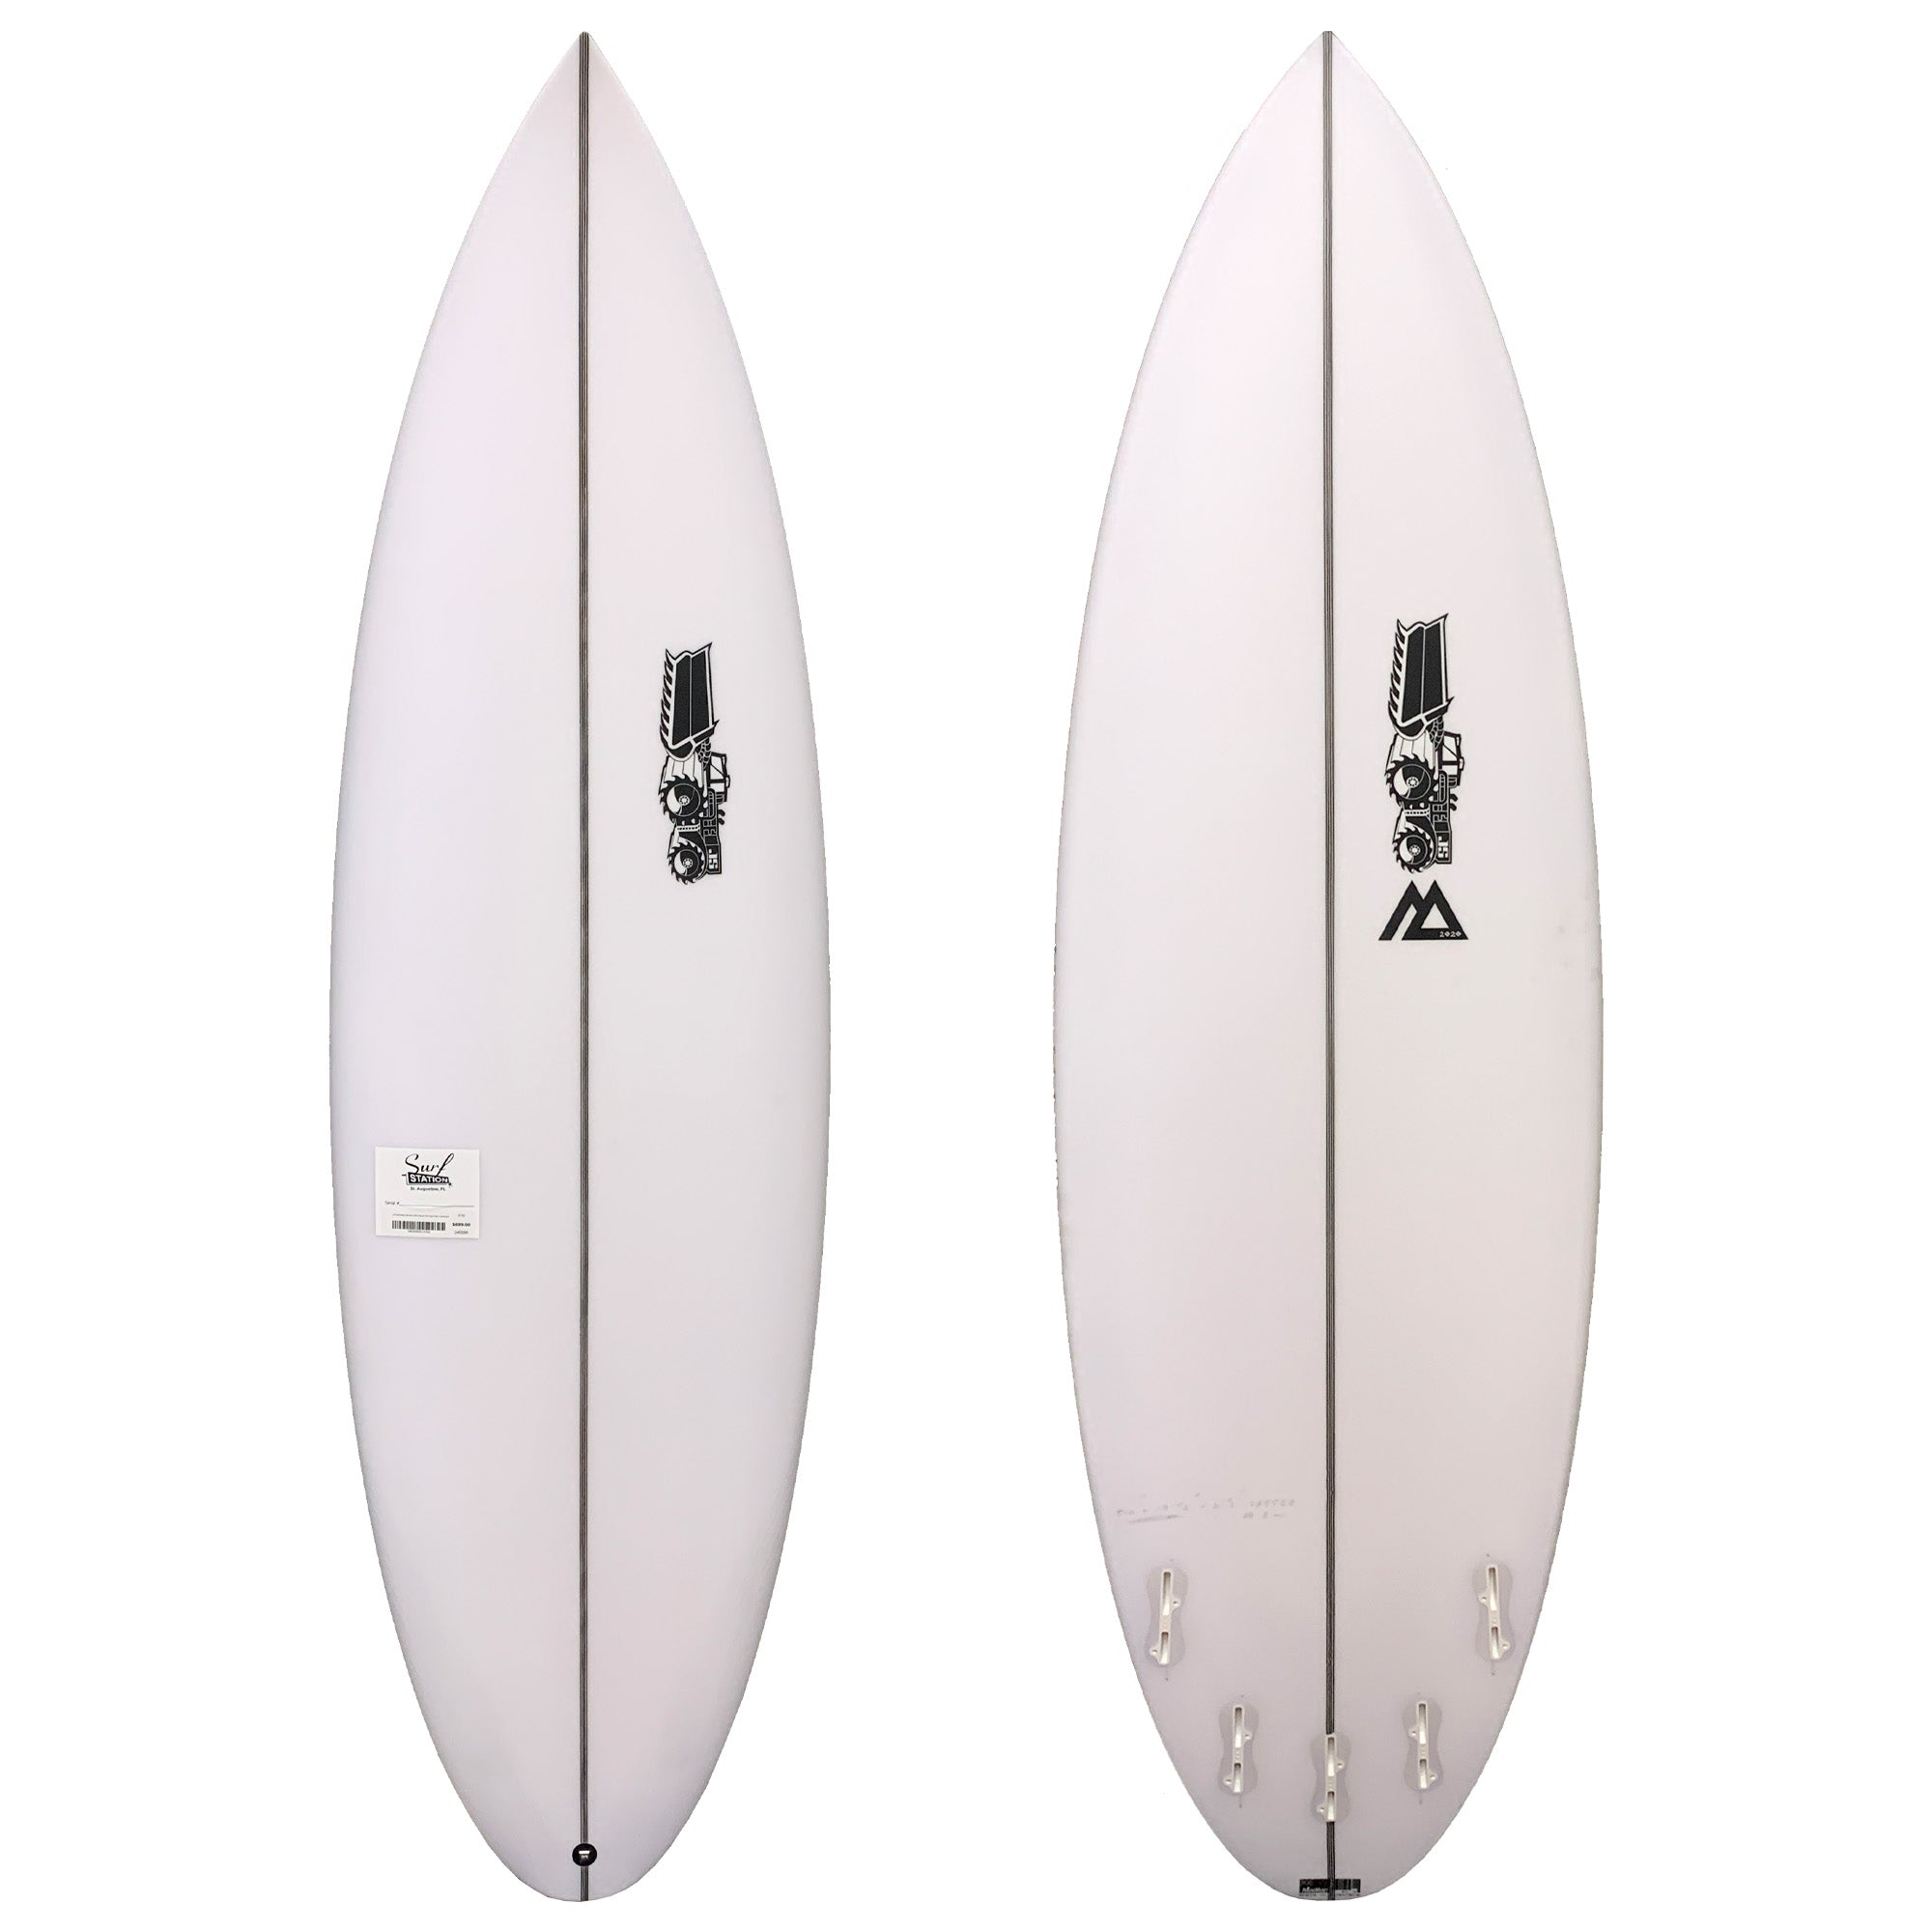 JS Monsta 2020 Round Tail Easy Rider Surfboard - FCS II